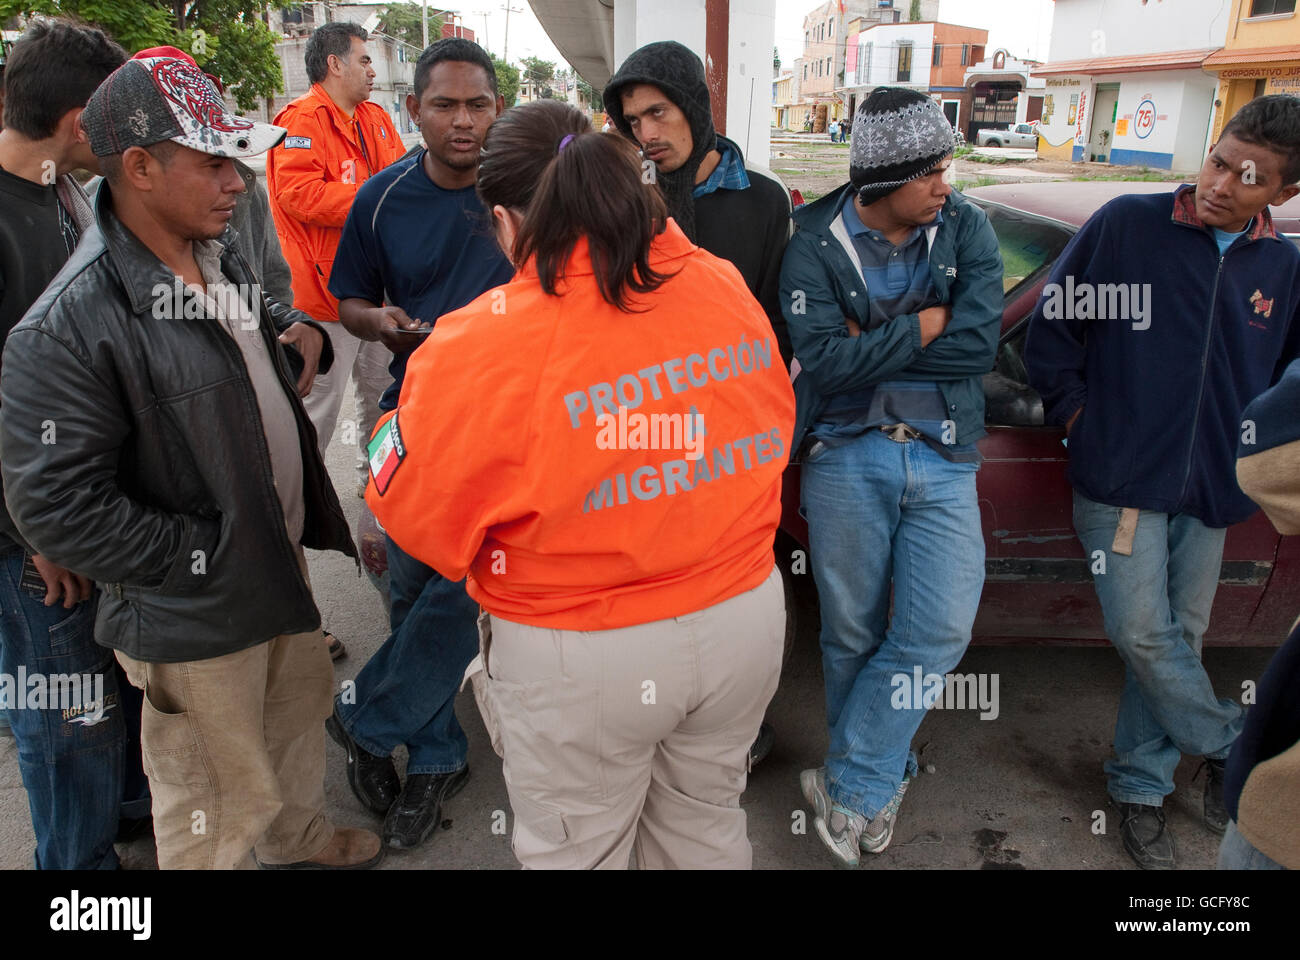 Local government agencies and officials attempt to orient and help Central American migrants passing through central - Stock Image